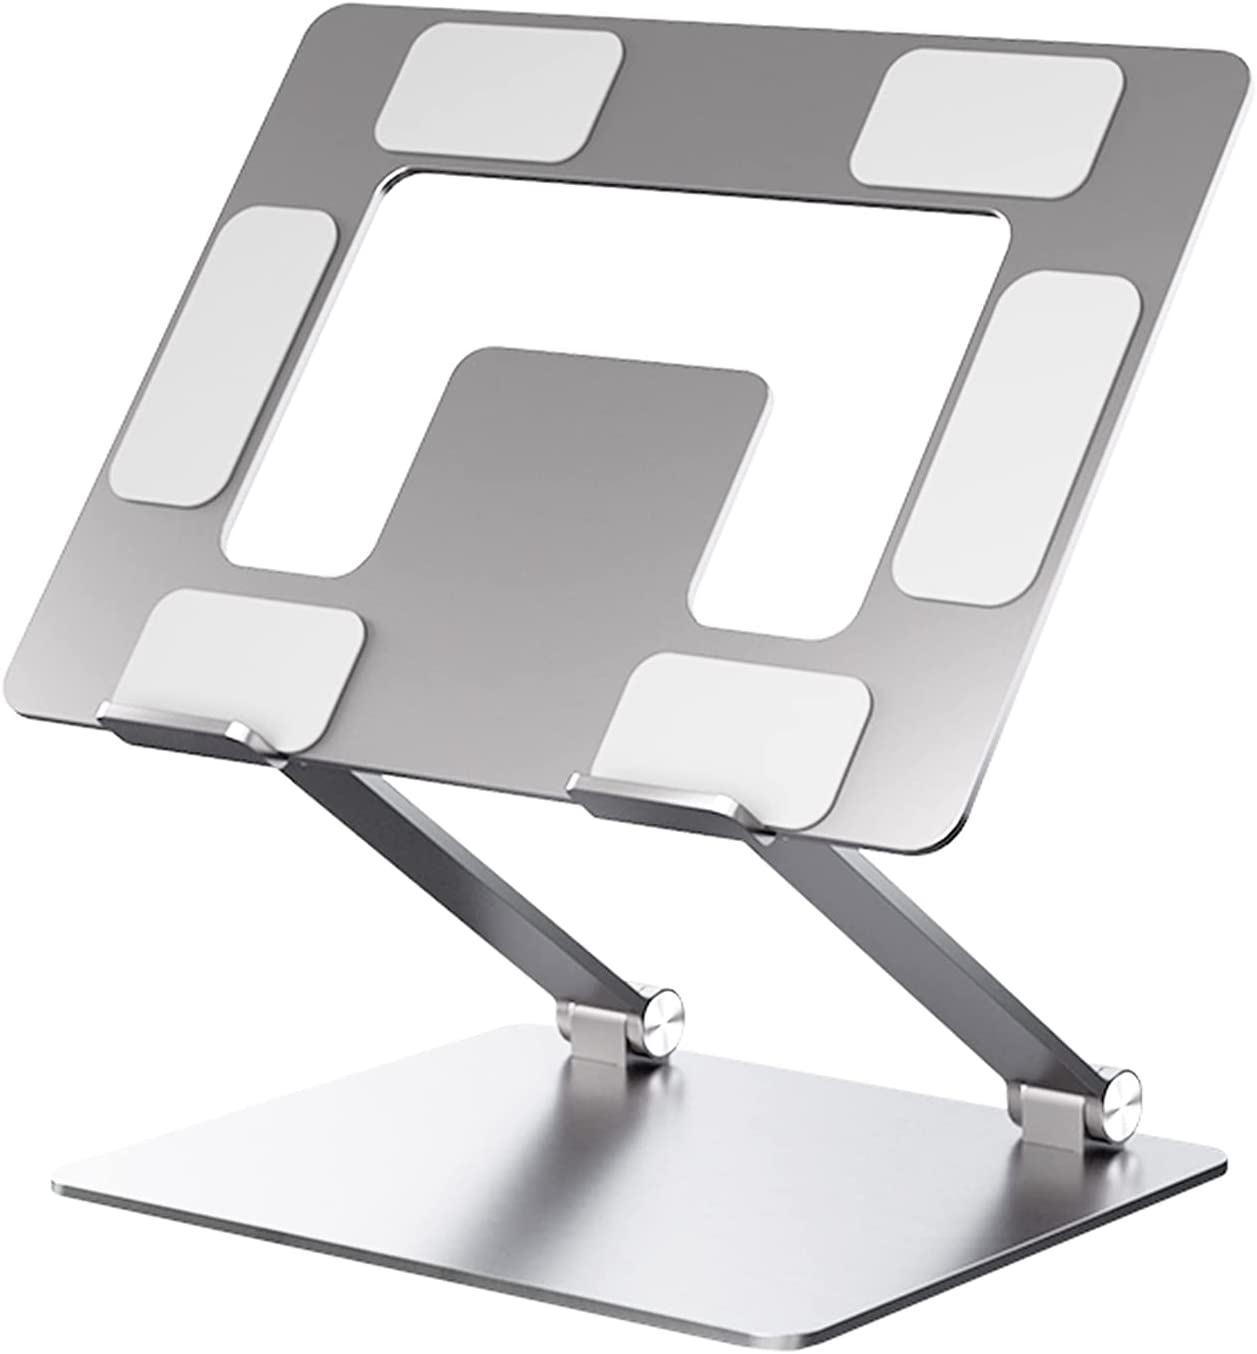 Clearance SALE Limited time Eagollar Adjustable Bargain Laptop Stand fo Riser Holder Portable